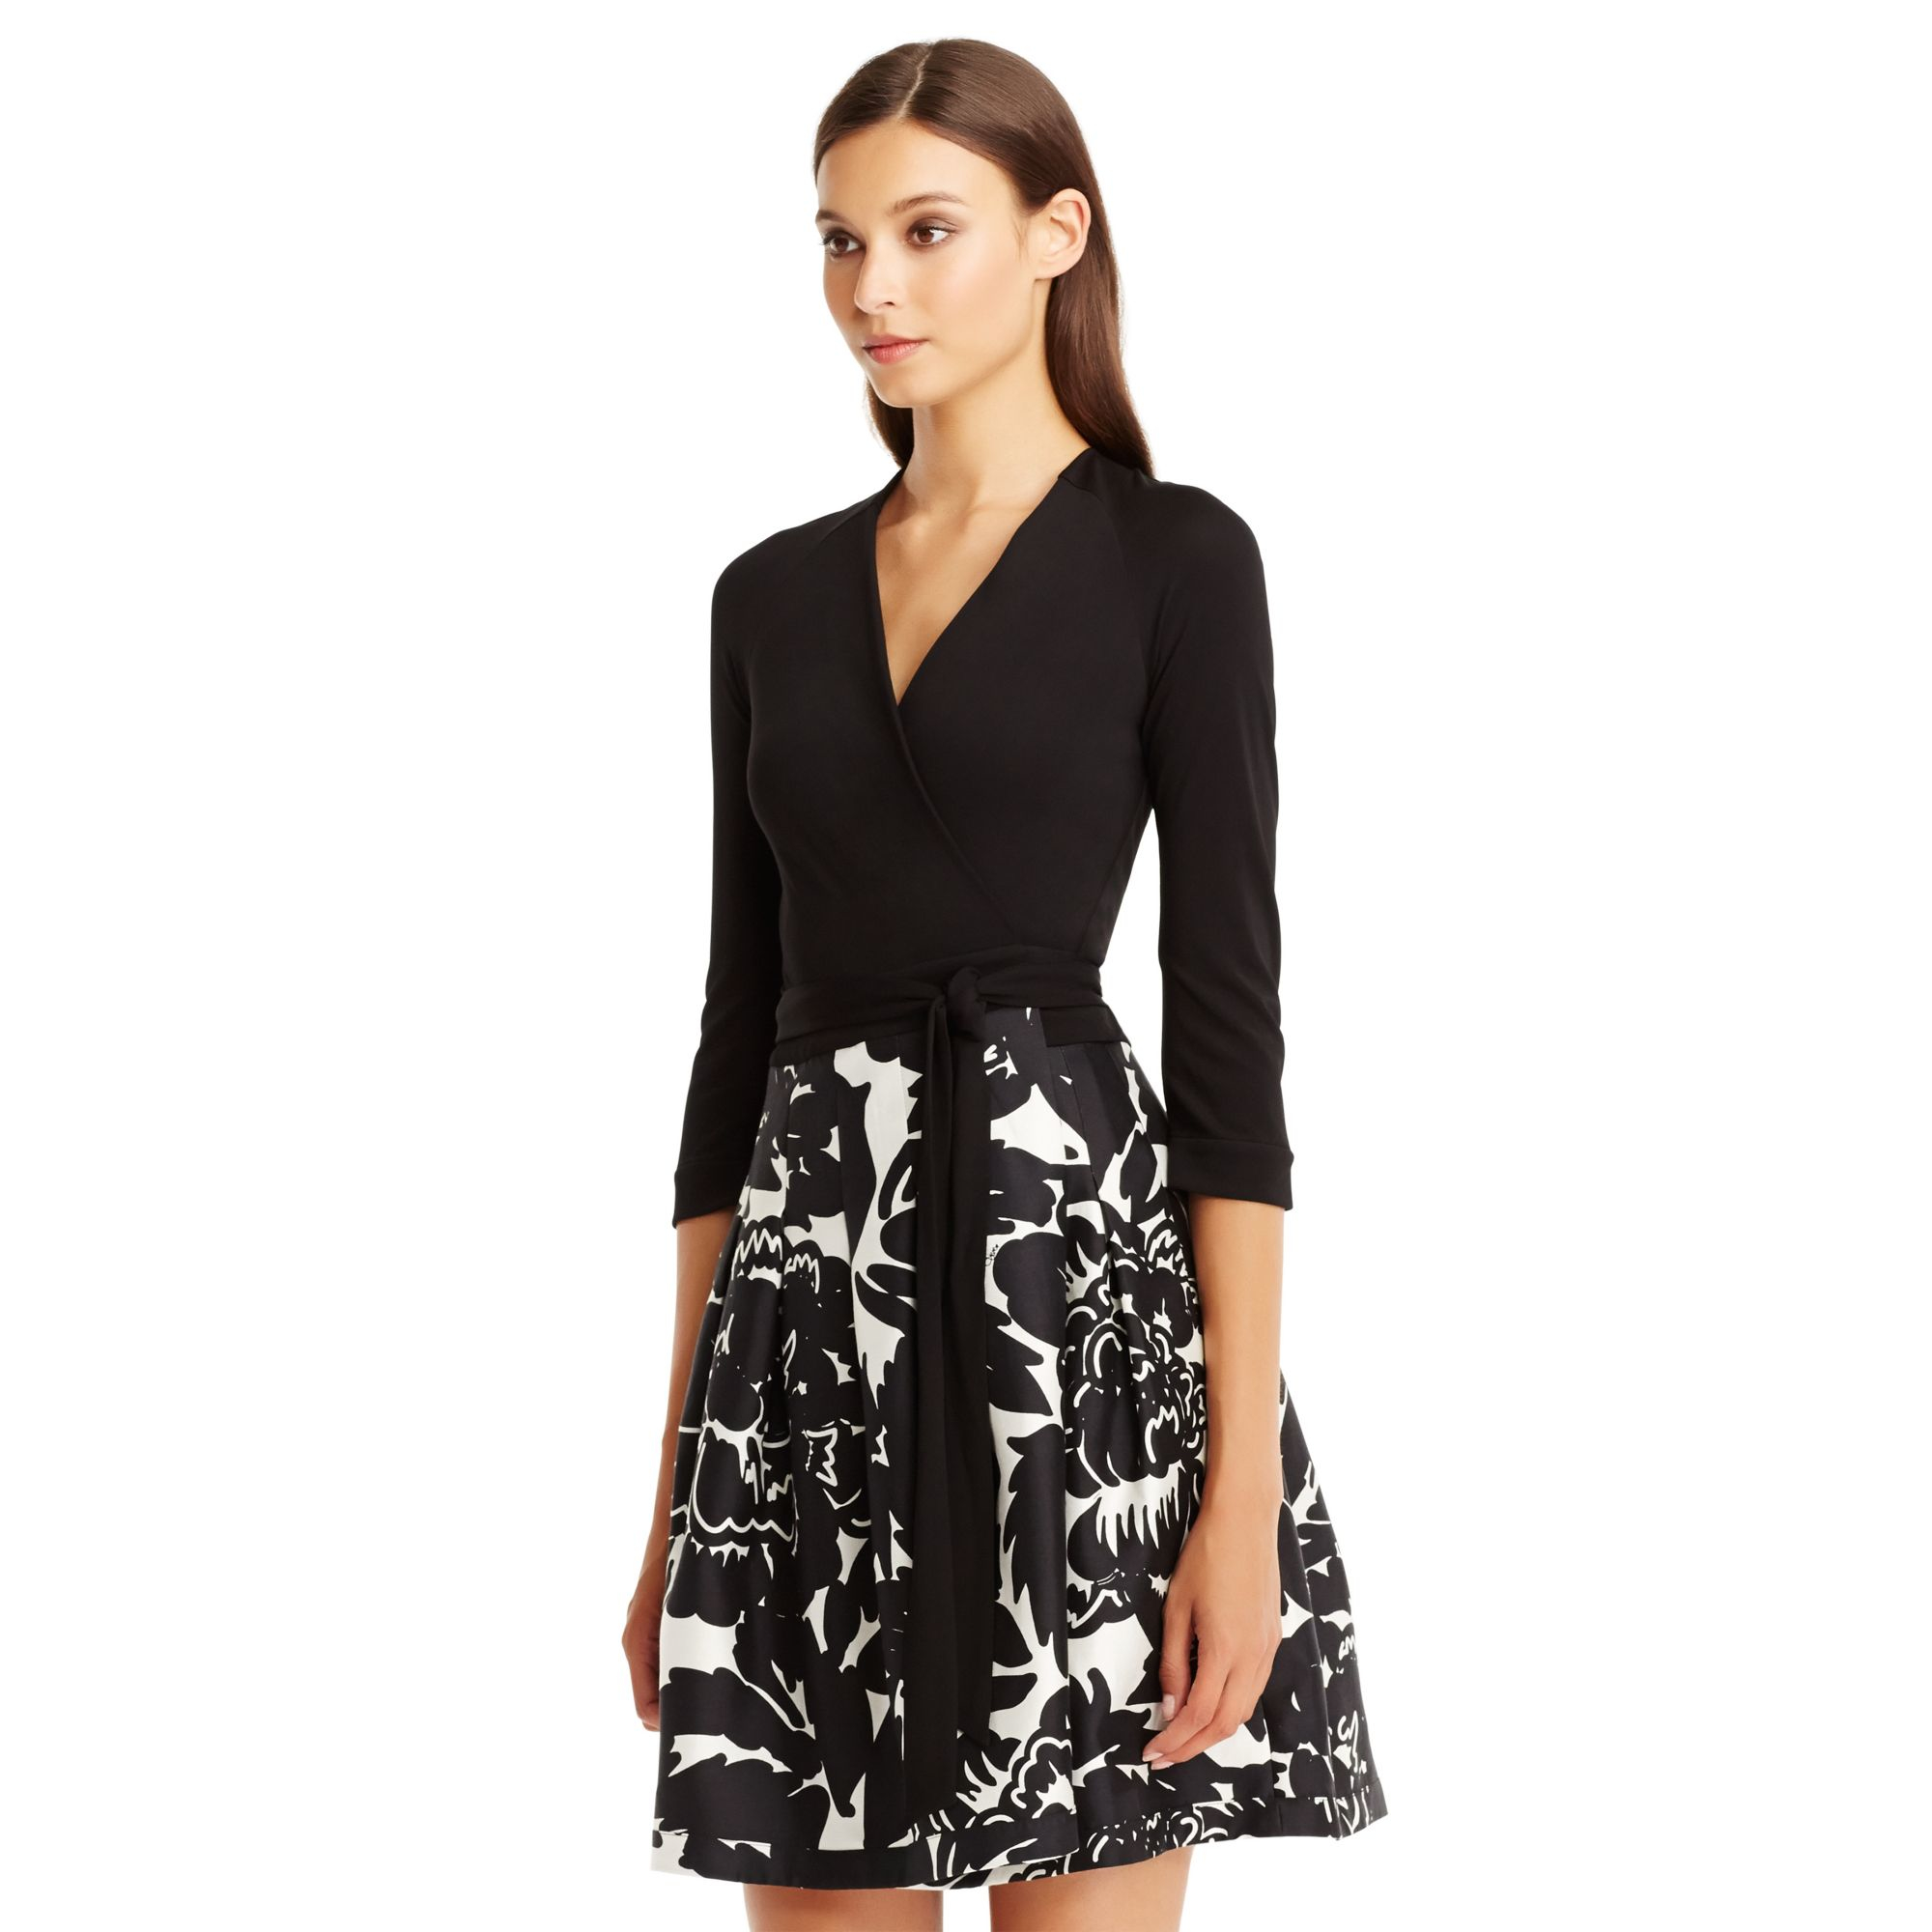 Diane von furstenberg dvf jewel silk combo wrap dress in for Diane von furstenberg clothes